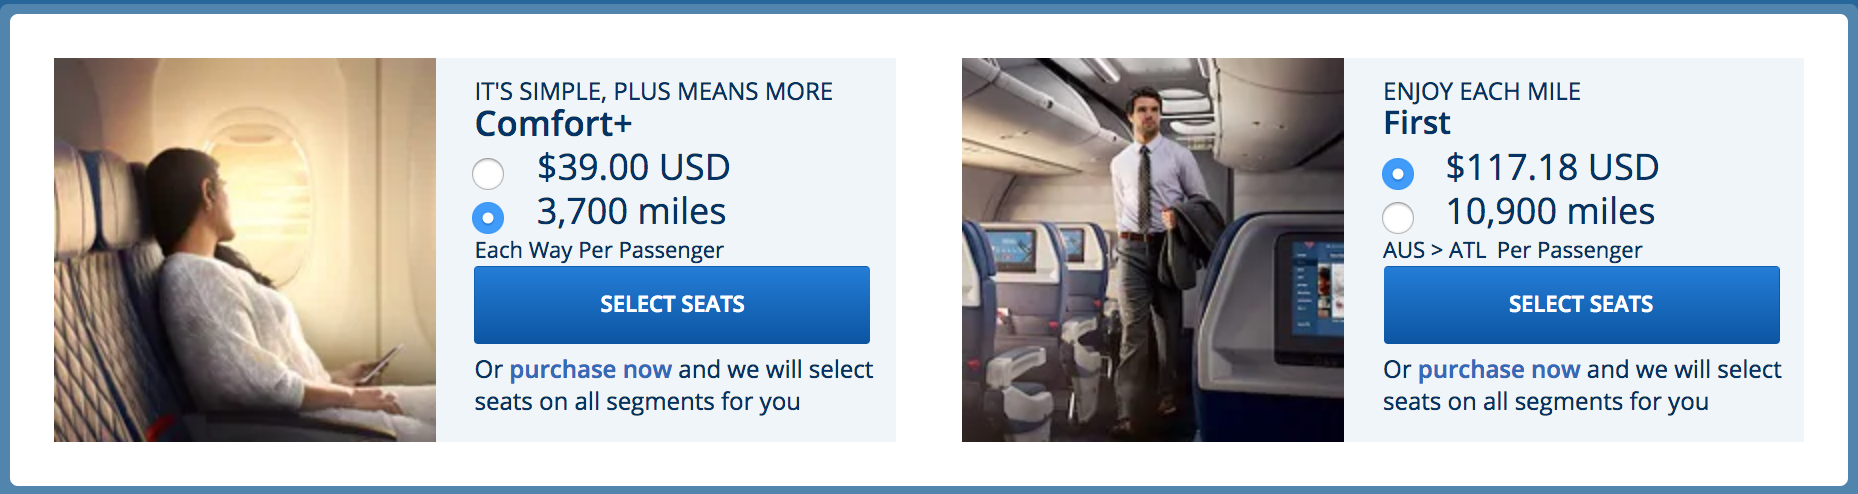 Upgrade with Cash or SkyMiles